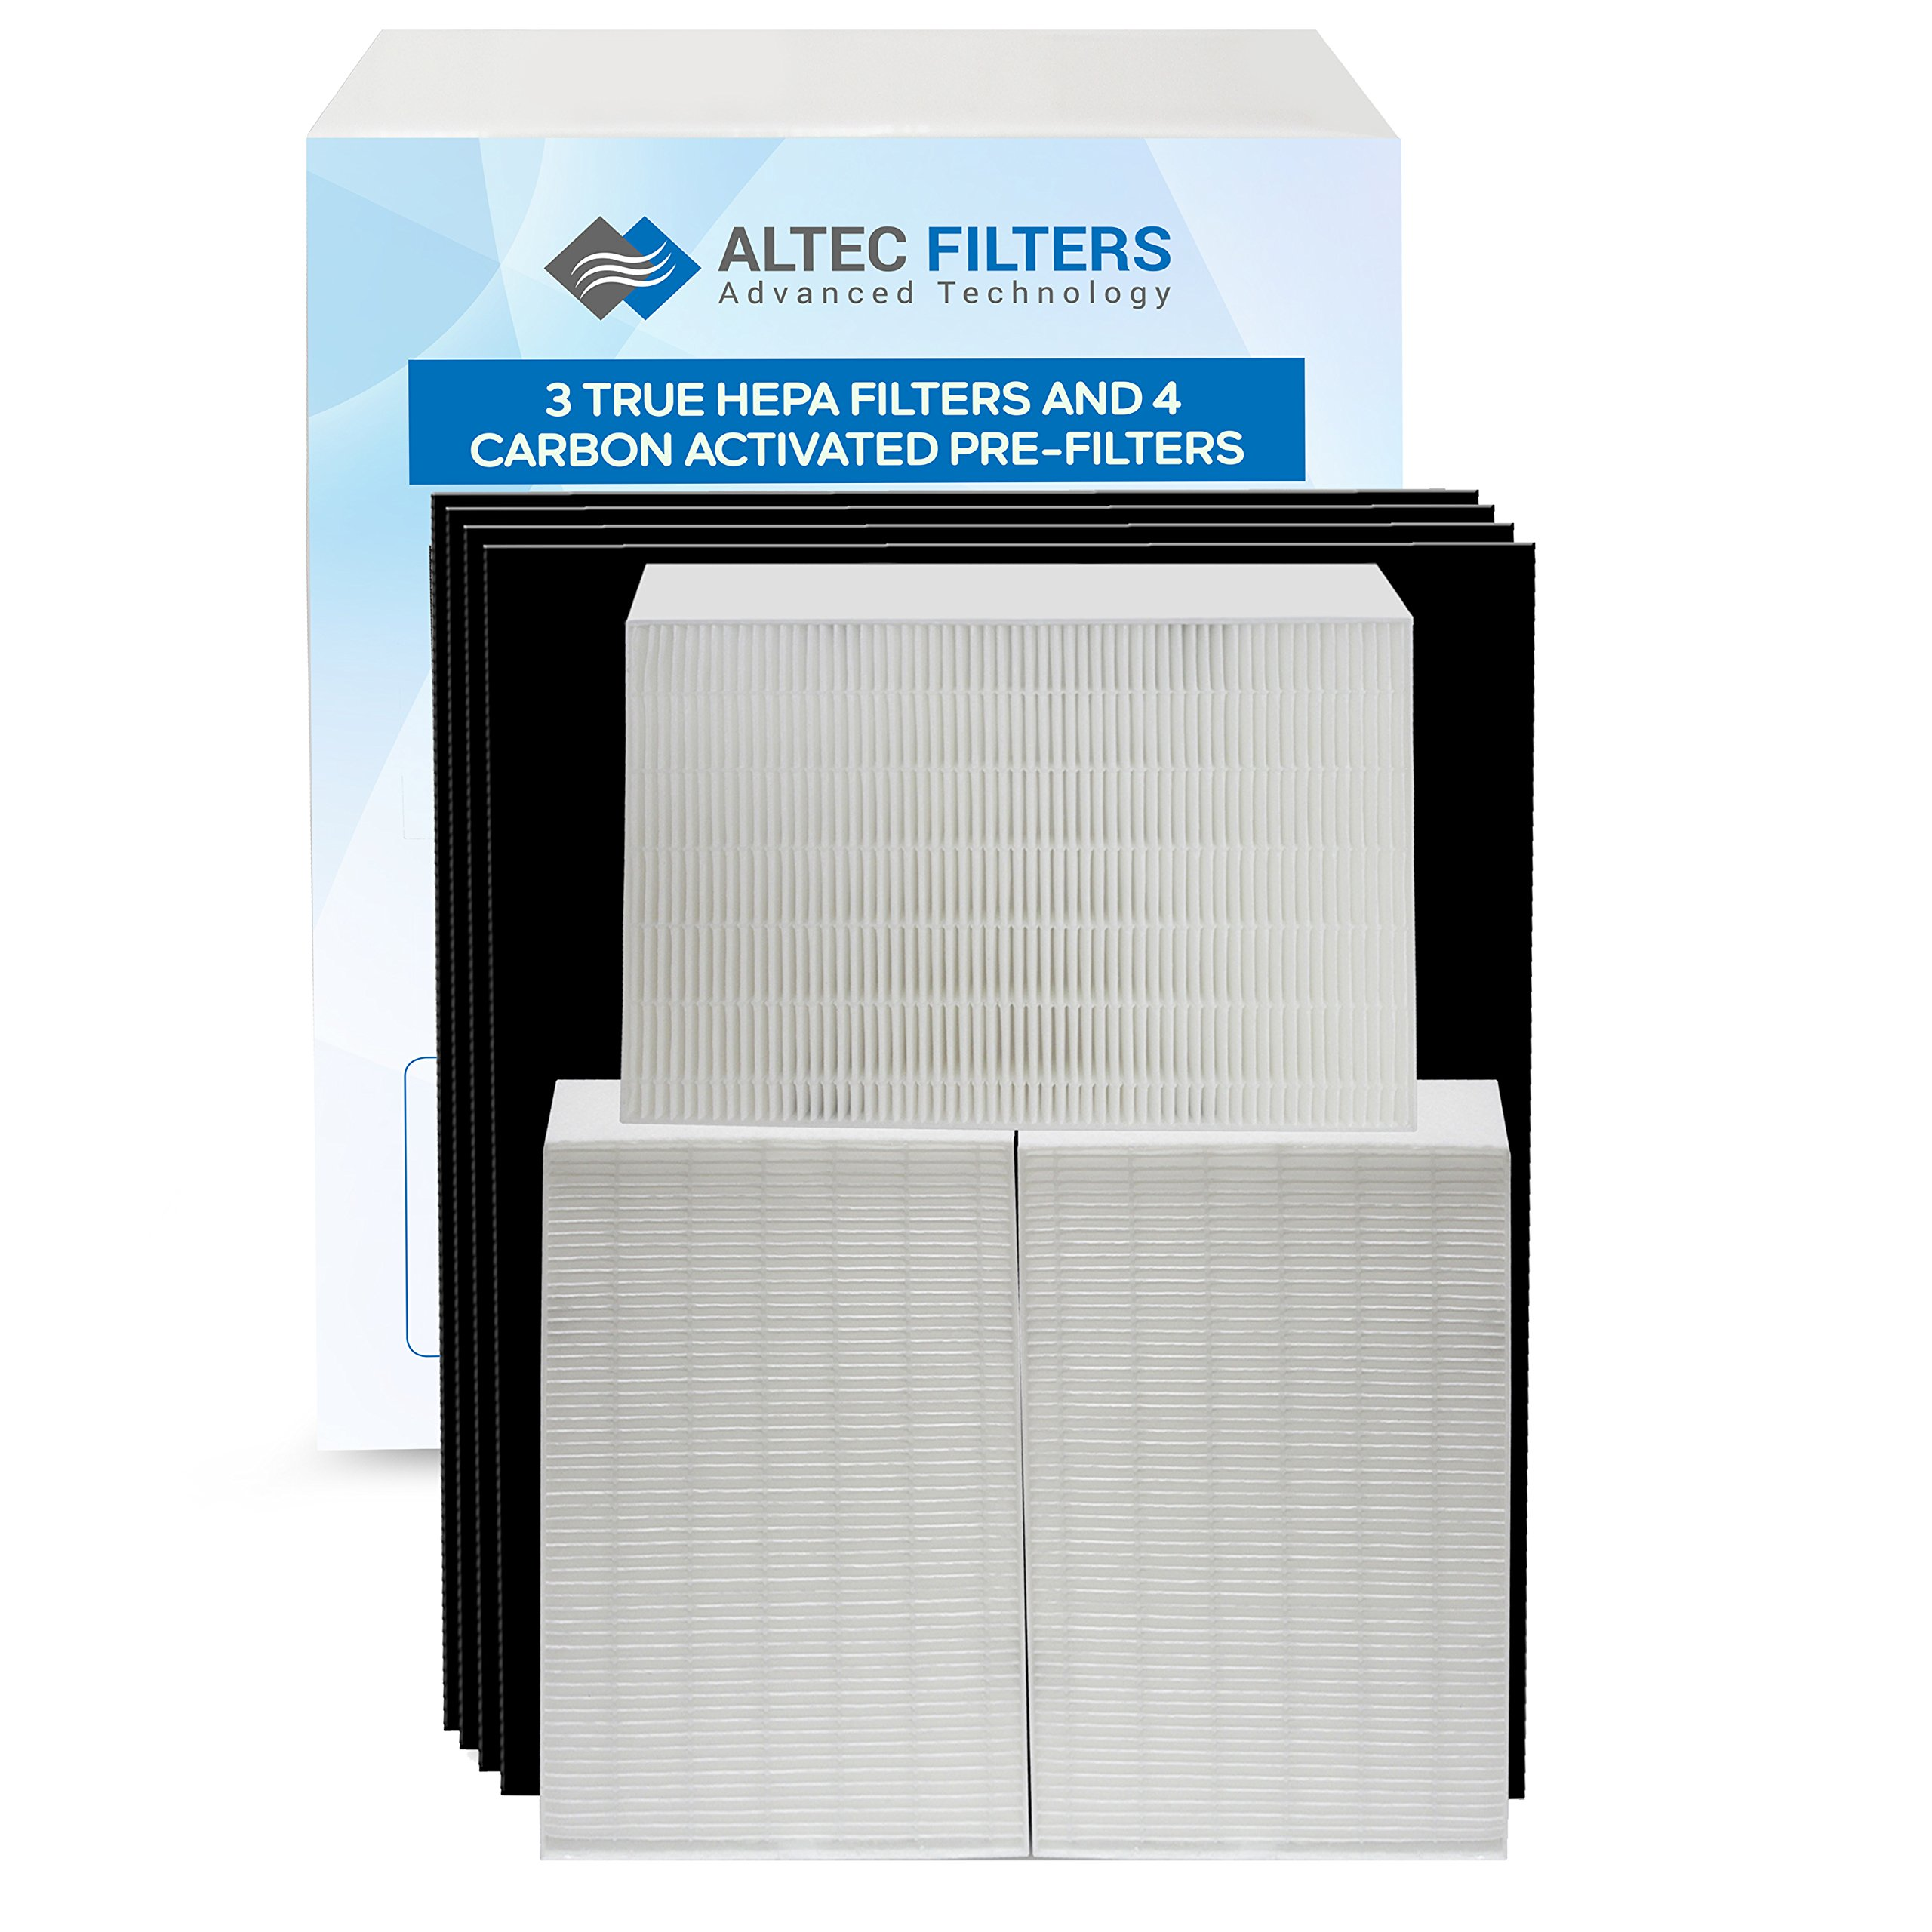 Altec Filters True HEPA Premium Quality Replacement Filters for Honeywell HPA300 Air Purifier, 3 True HEPA Filters Plus 4 Activated Carbon Prefilters HW HRF-R3 HRF-AP1 Filter R